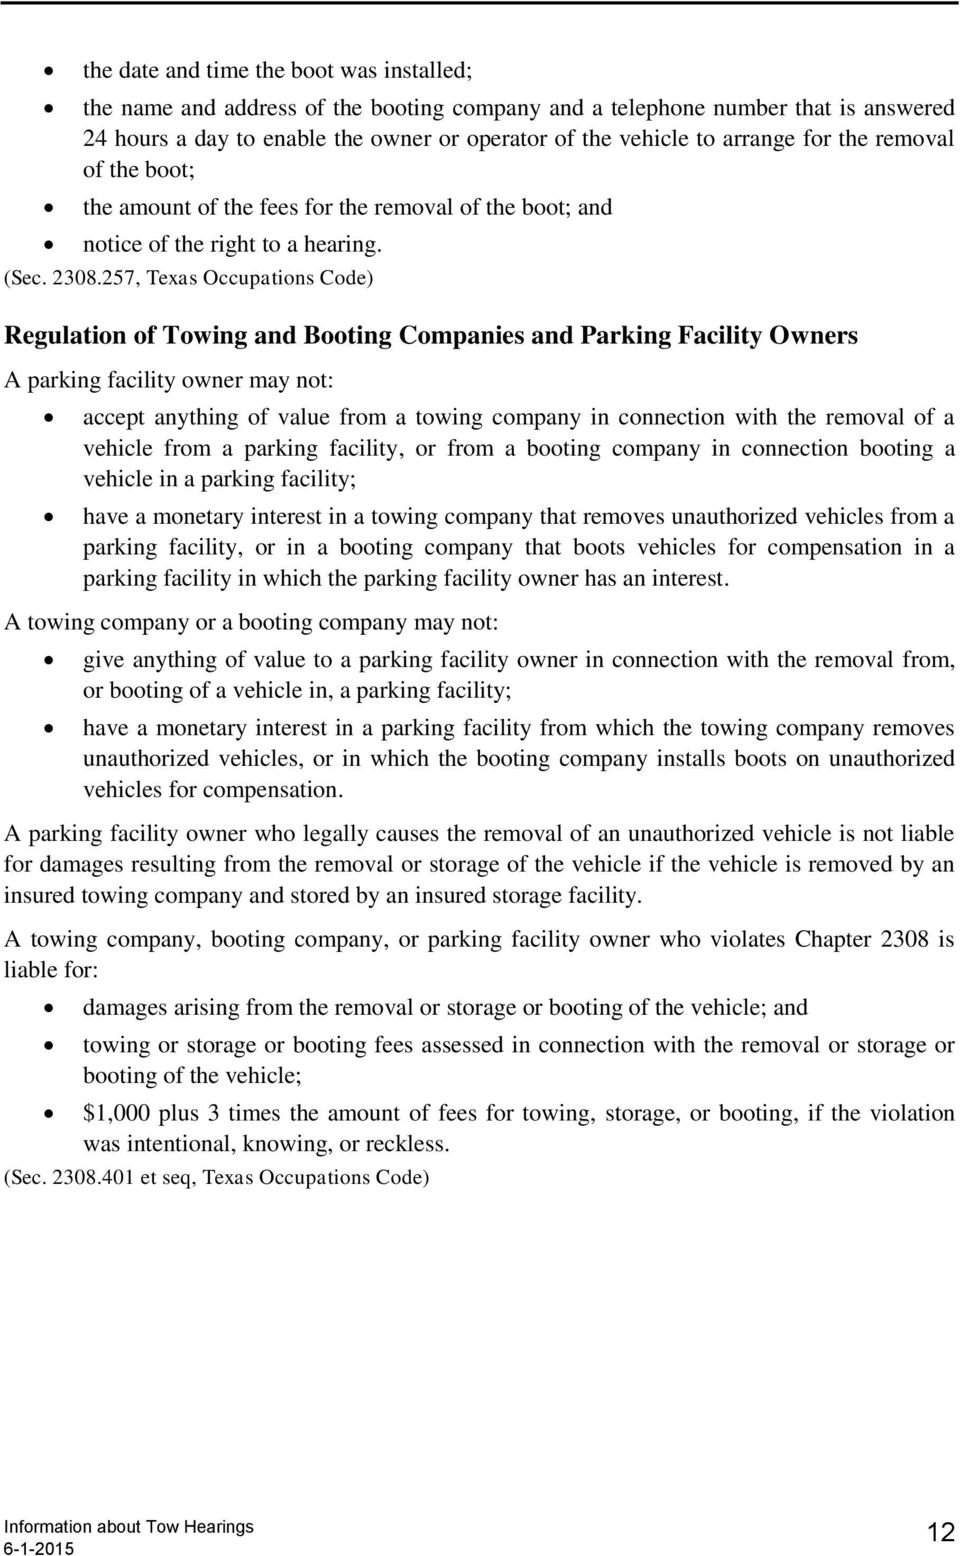 257, Texas Occupations Code) Regulation of Towing and Booting Companies and Parking Facility Owners A parking facility owner may not: accept anything of value from a towing company in connection with